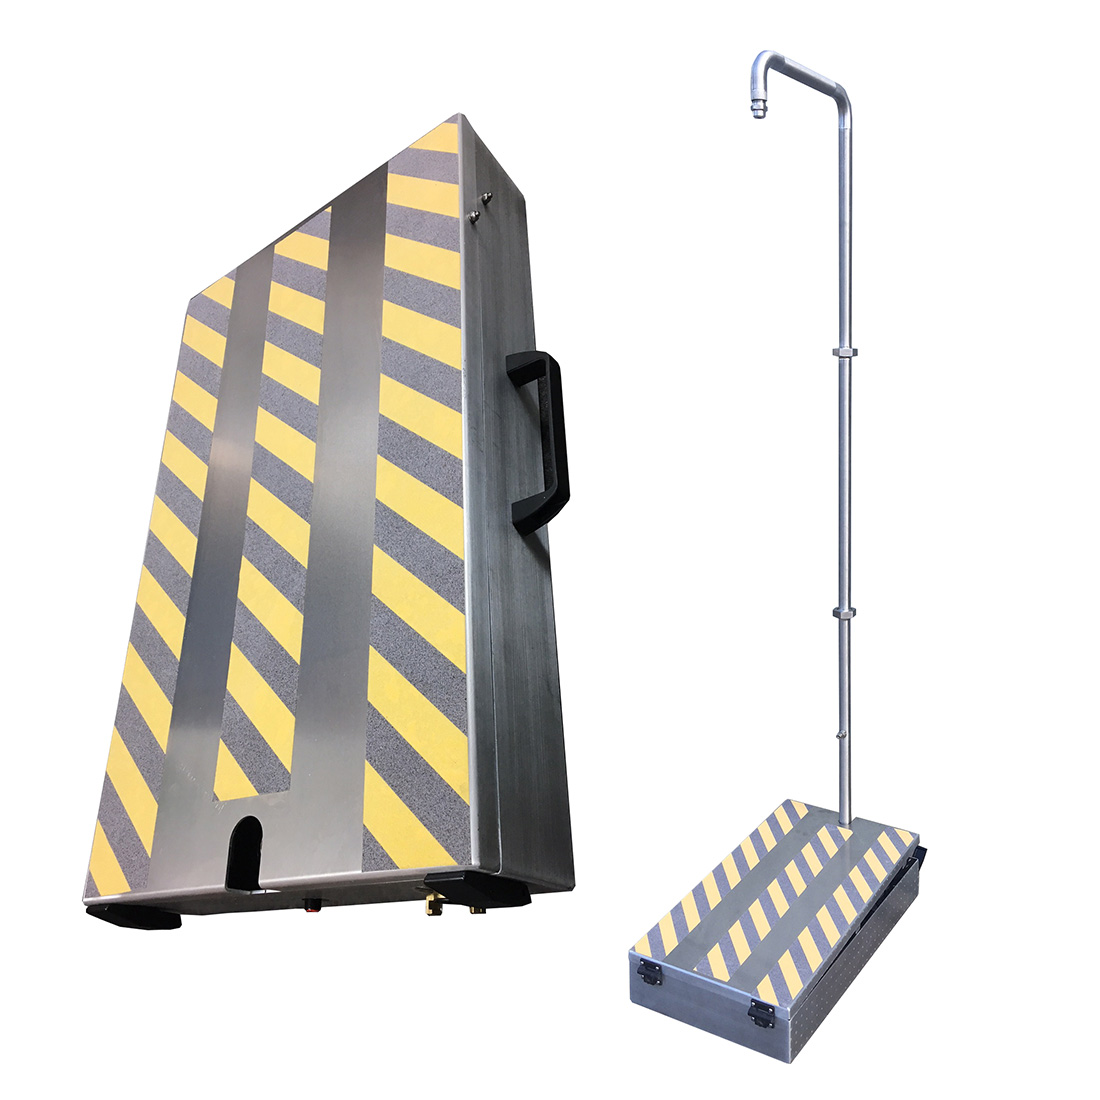 Portable Mains-Fed Safety Shower